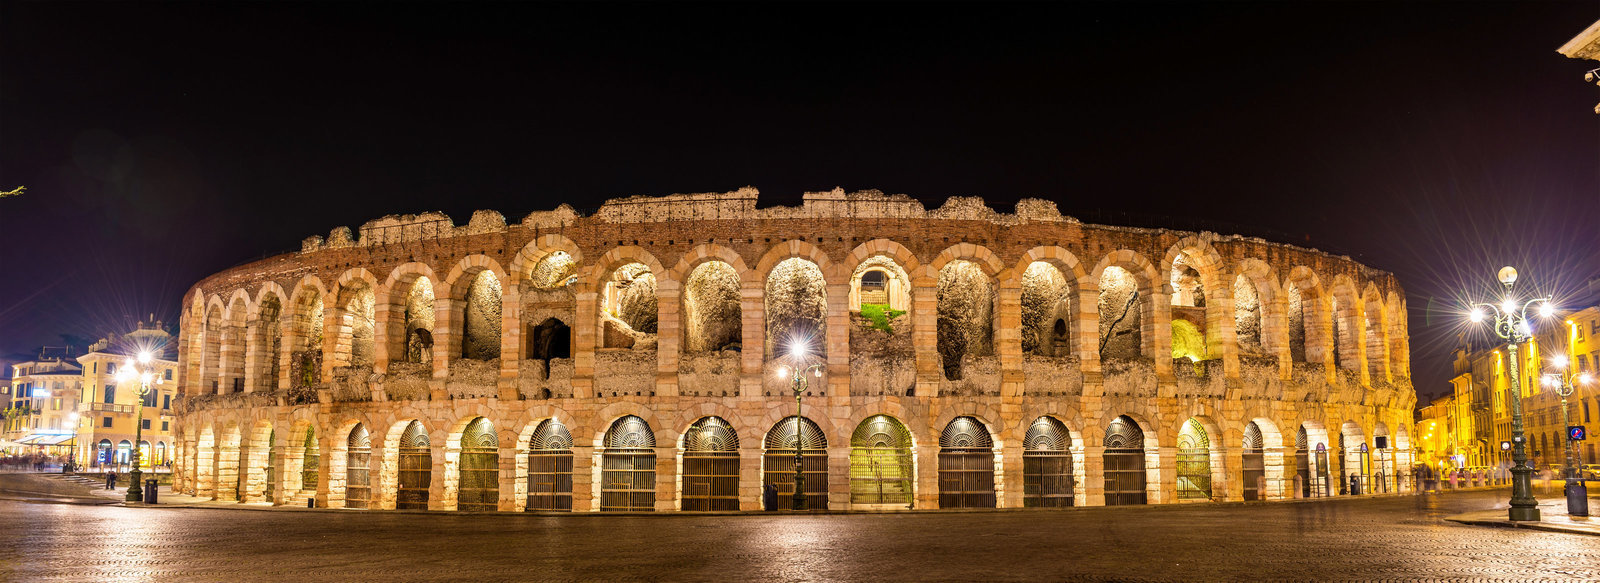 The Arena di Verona at night